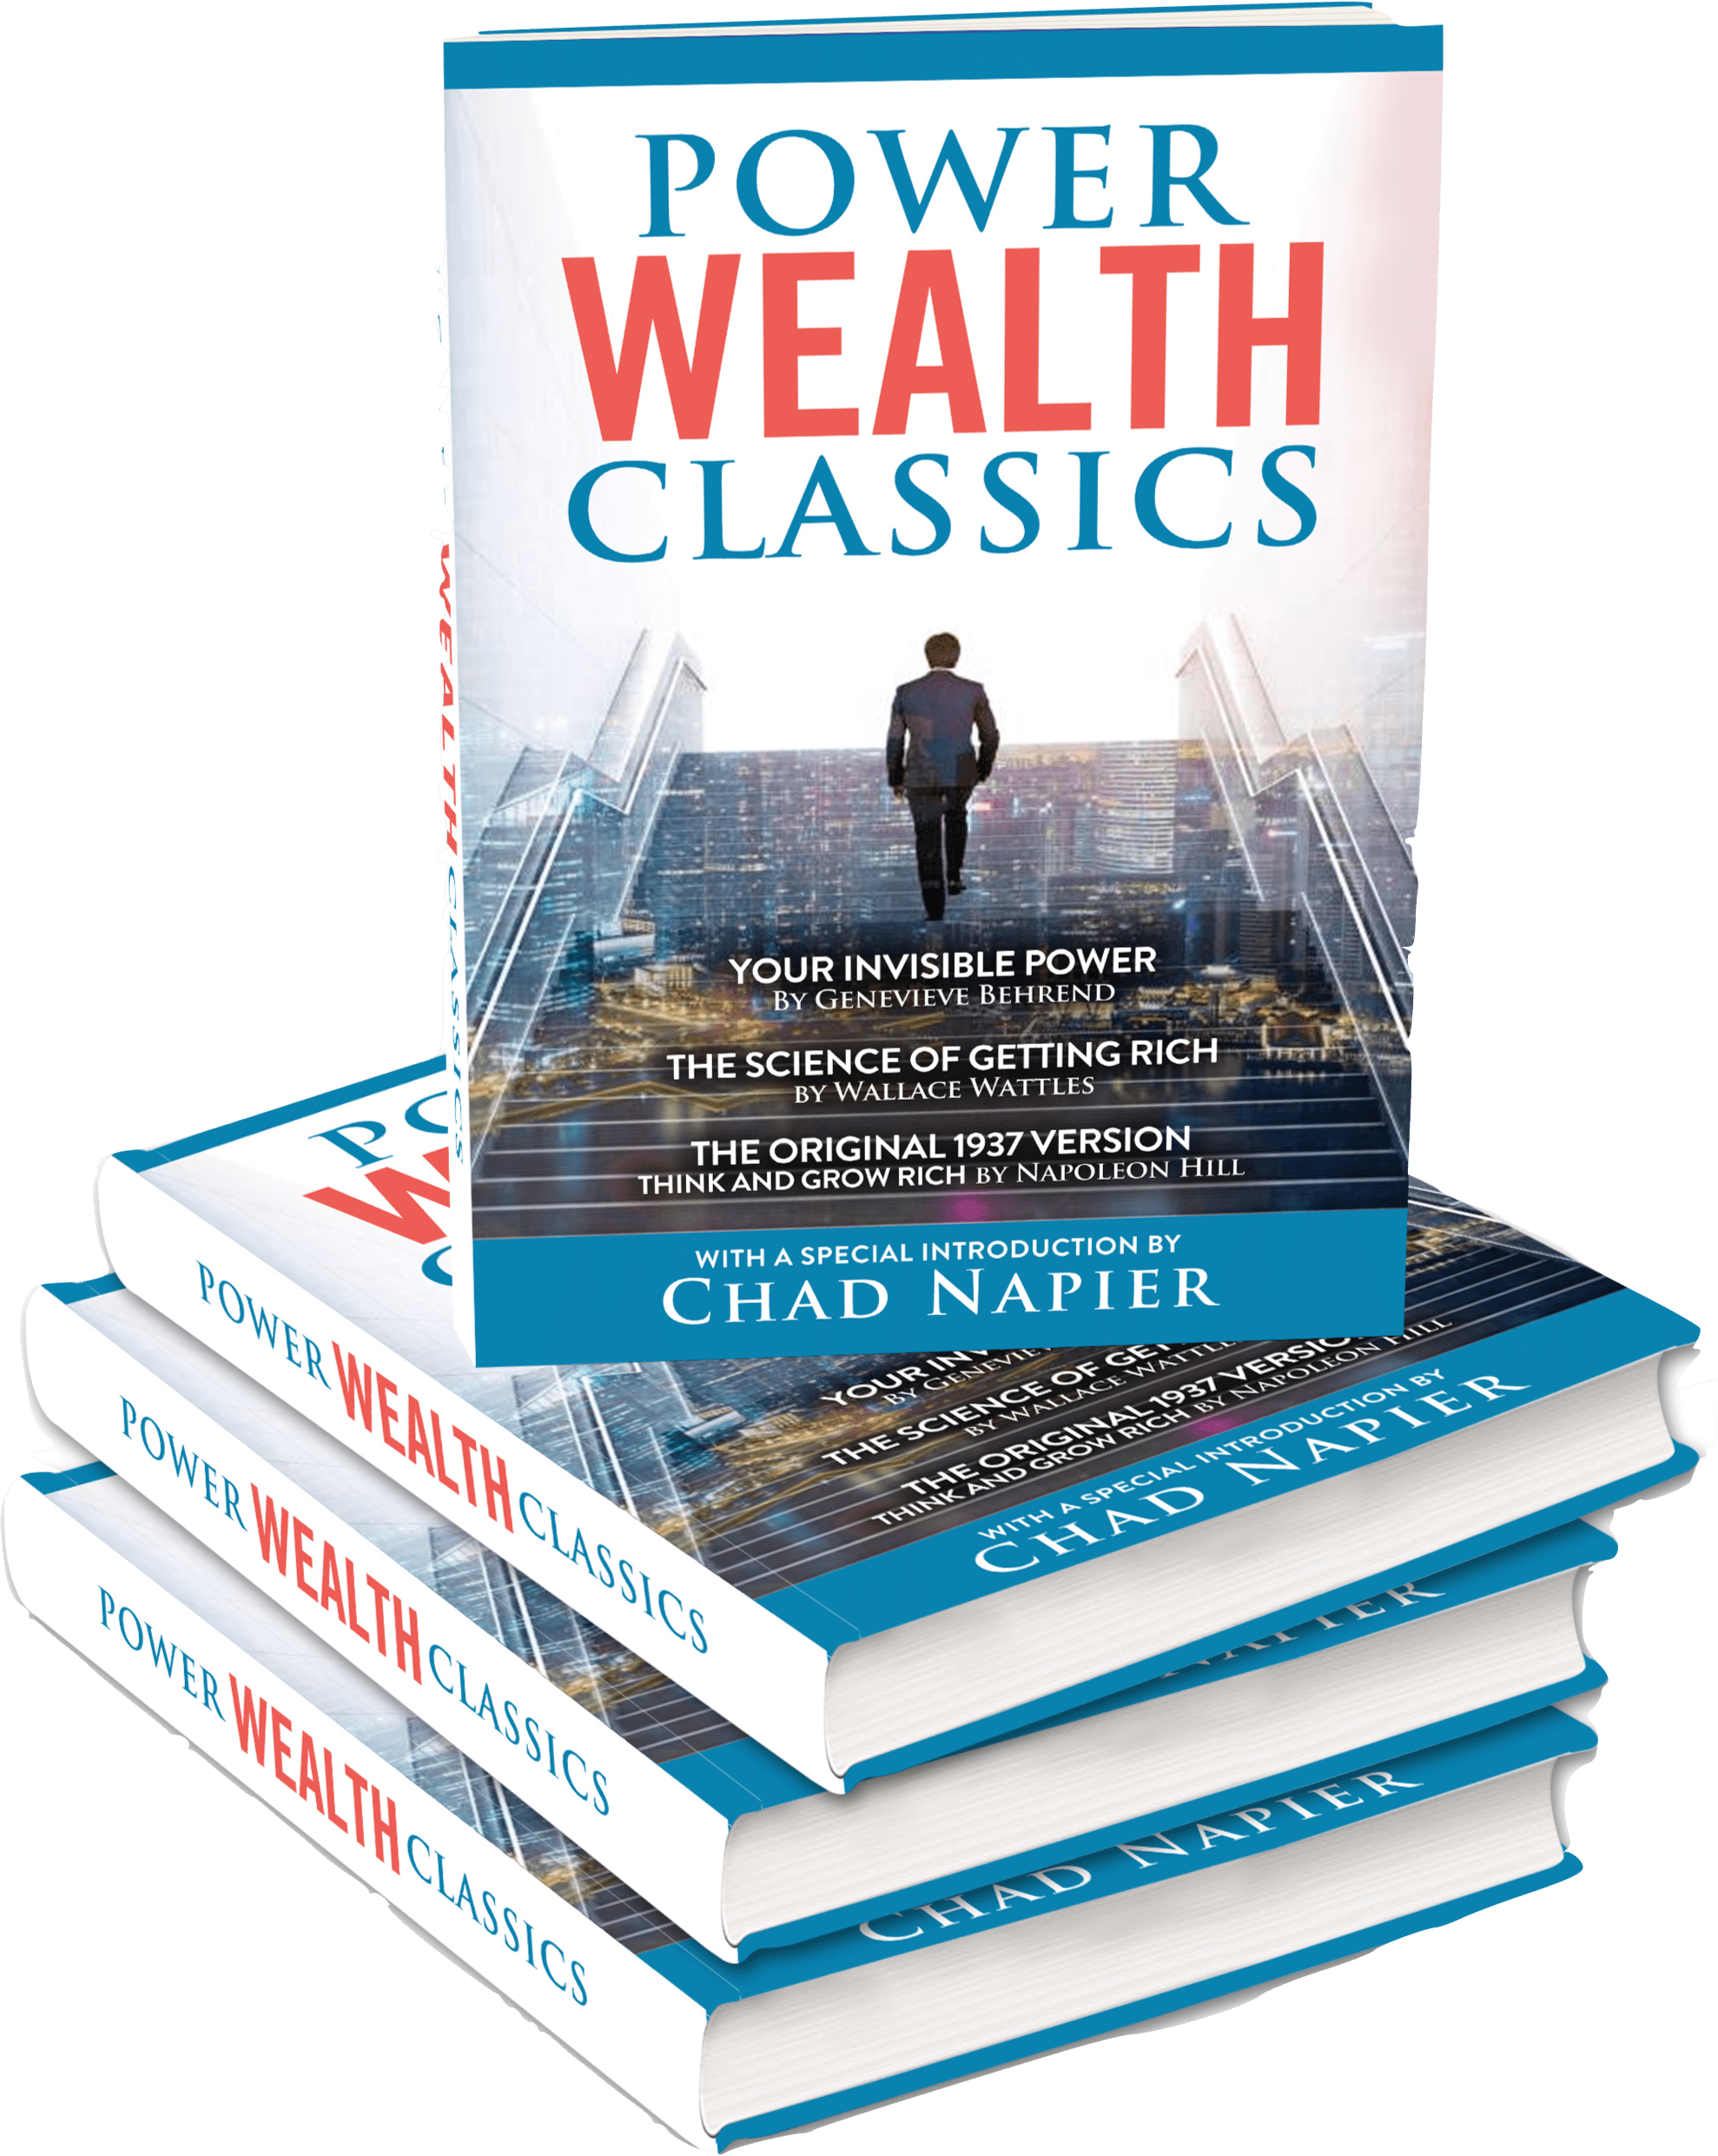 picture of power wealth classics 3d book cover